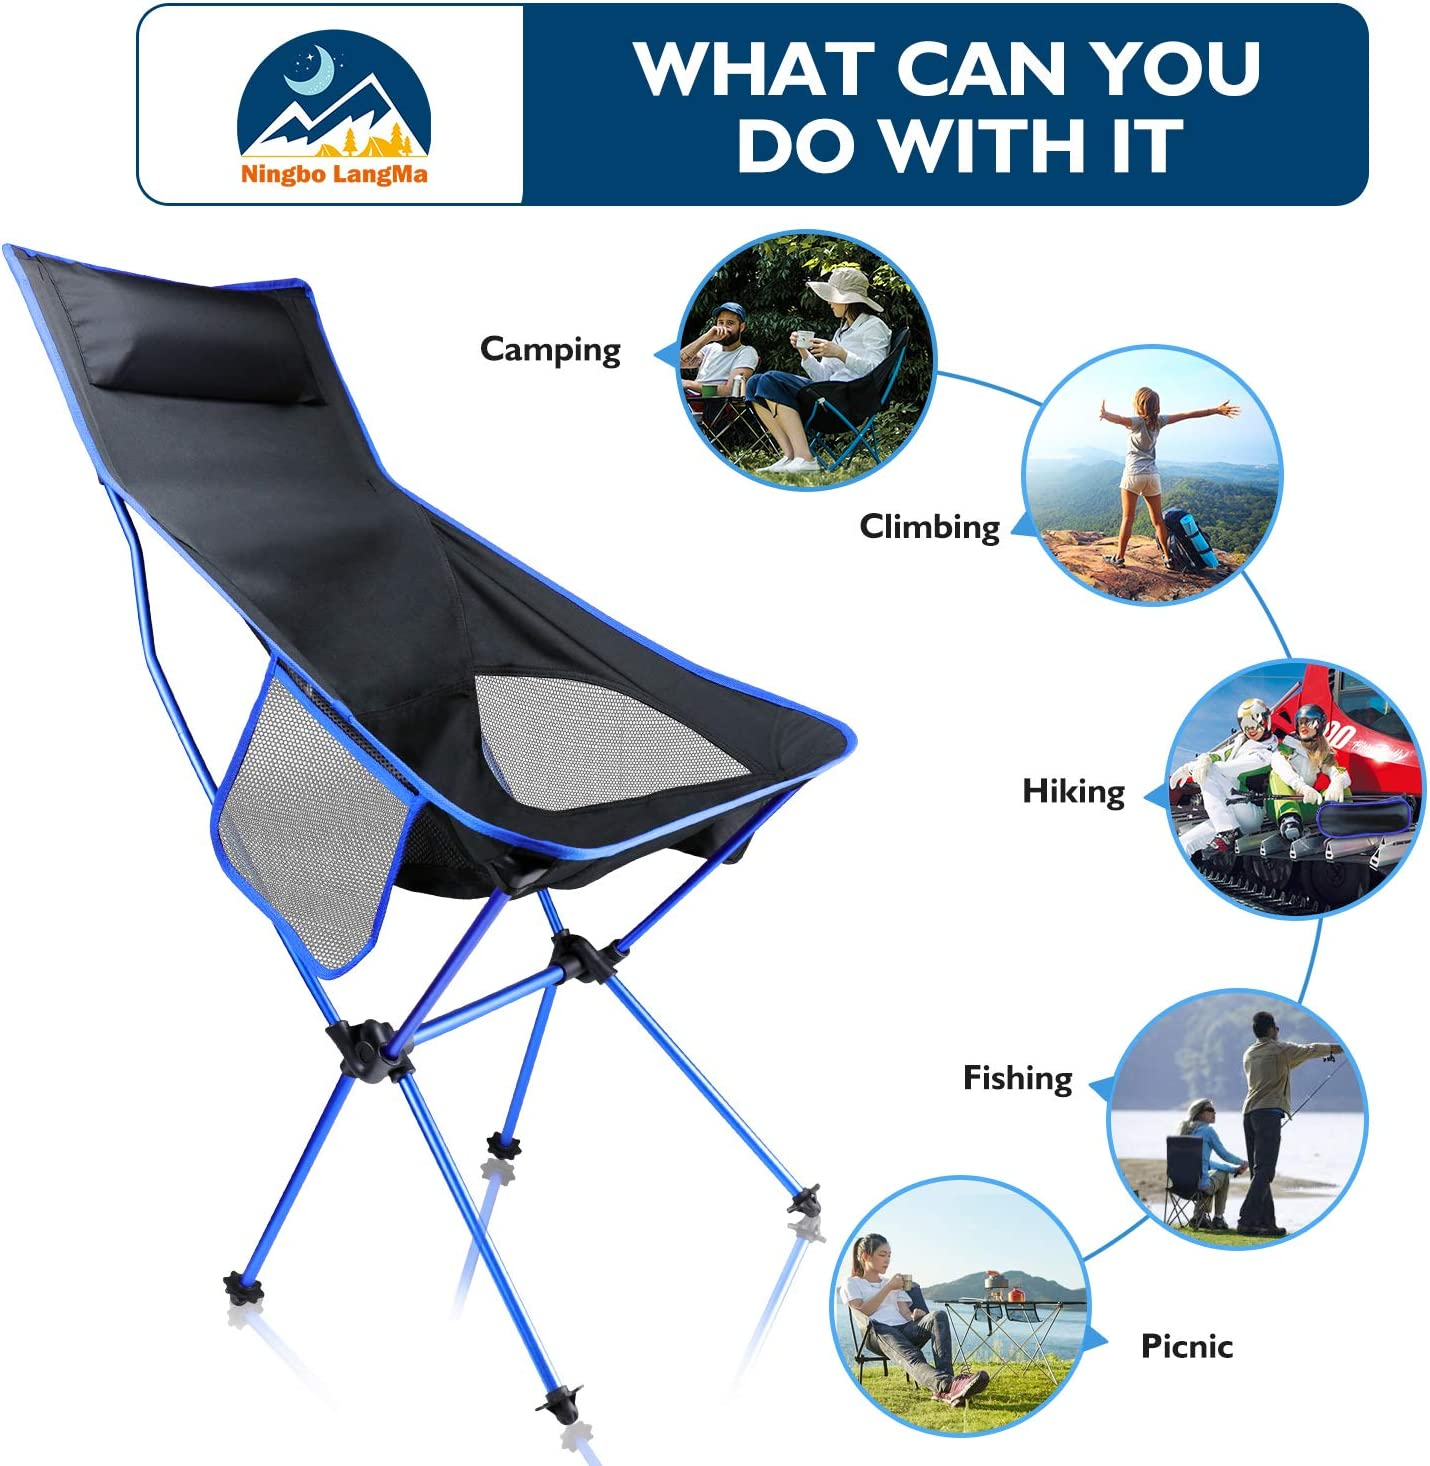 Ningbo LangMa Portable Folding Camping Chair Lightweight High Back Camp Chair with Cup Holder and Carry Bag 276lb Capacity for Outdoor Beach Lawn Fishing Travel Hiking Sports Garden Blue